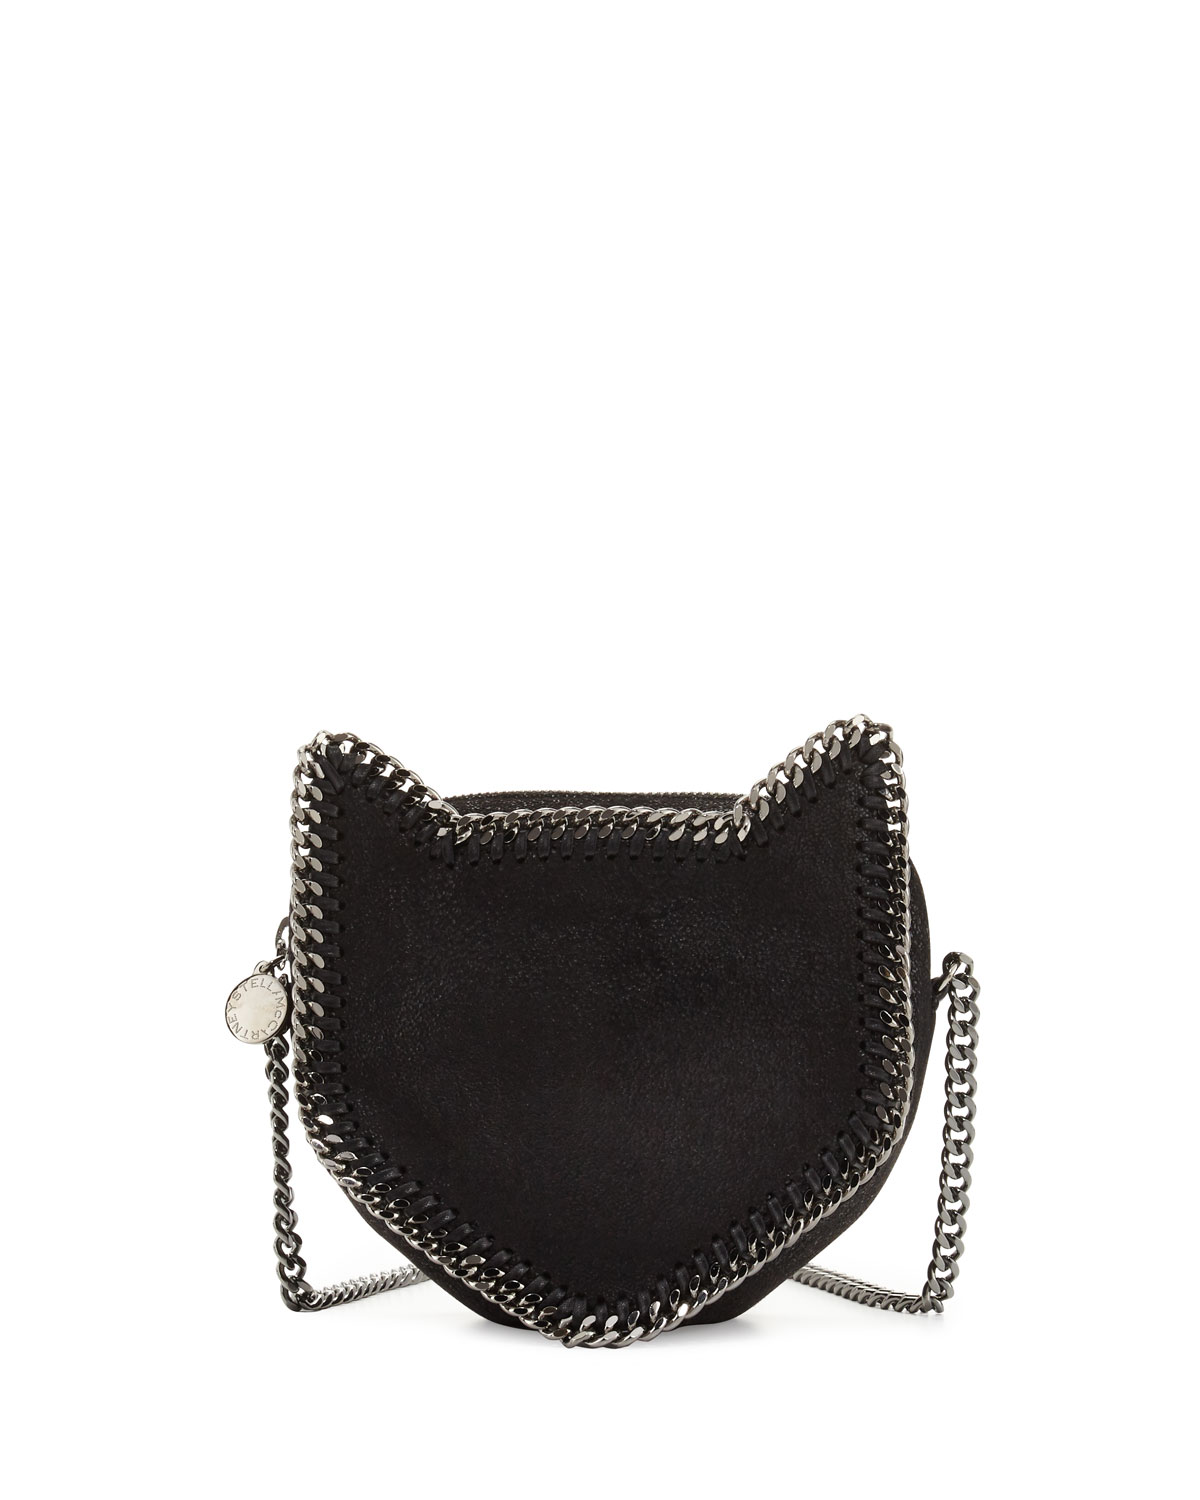 60b5c8d98d533 Stella McCartney Falabella Cat Crossbody Bag, Black | Neiman Marcus